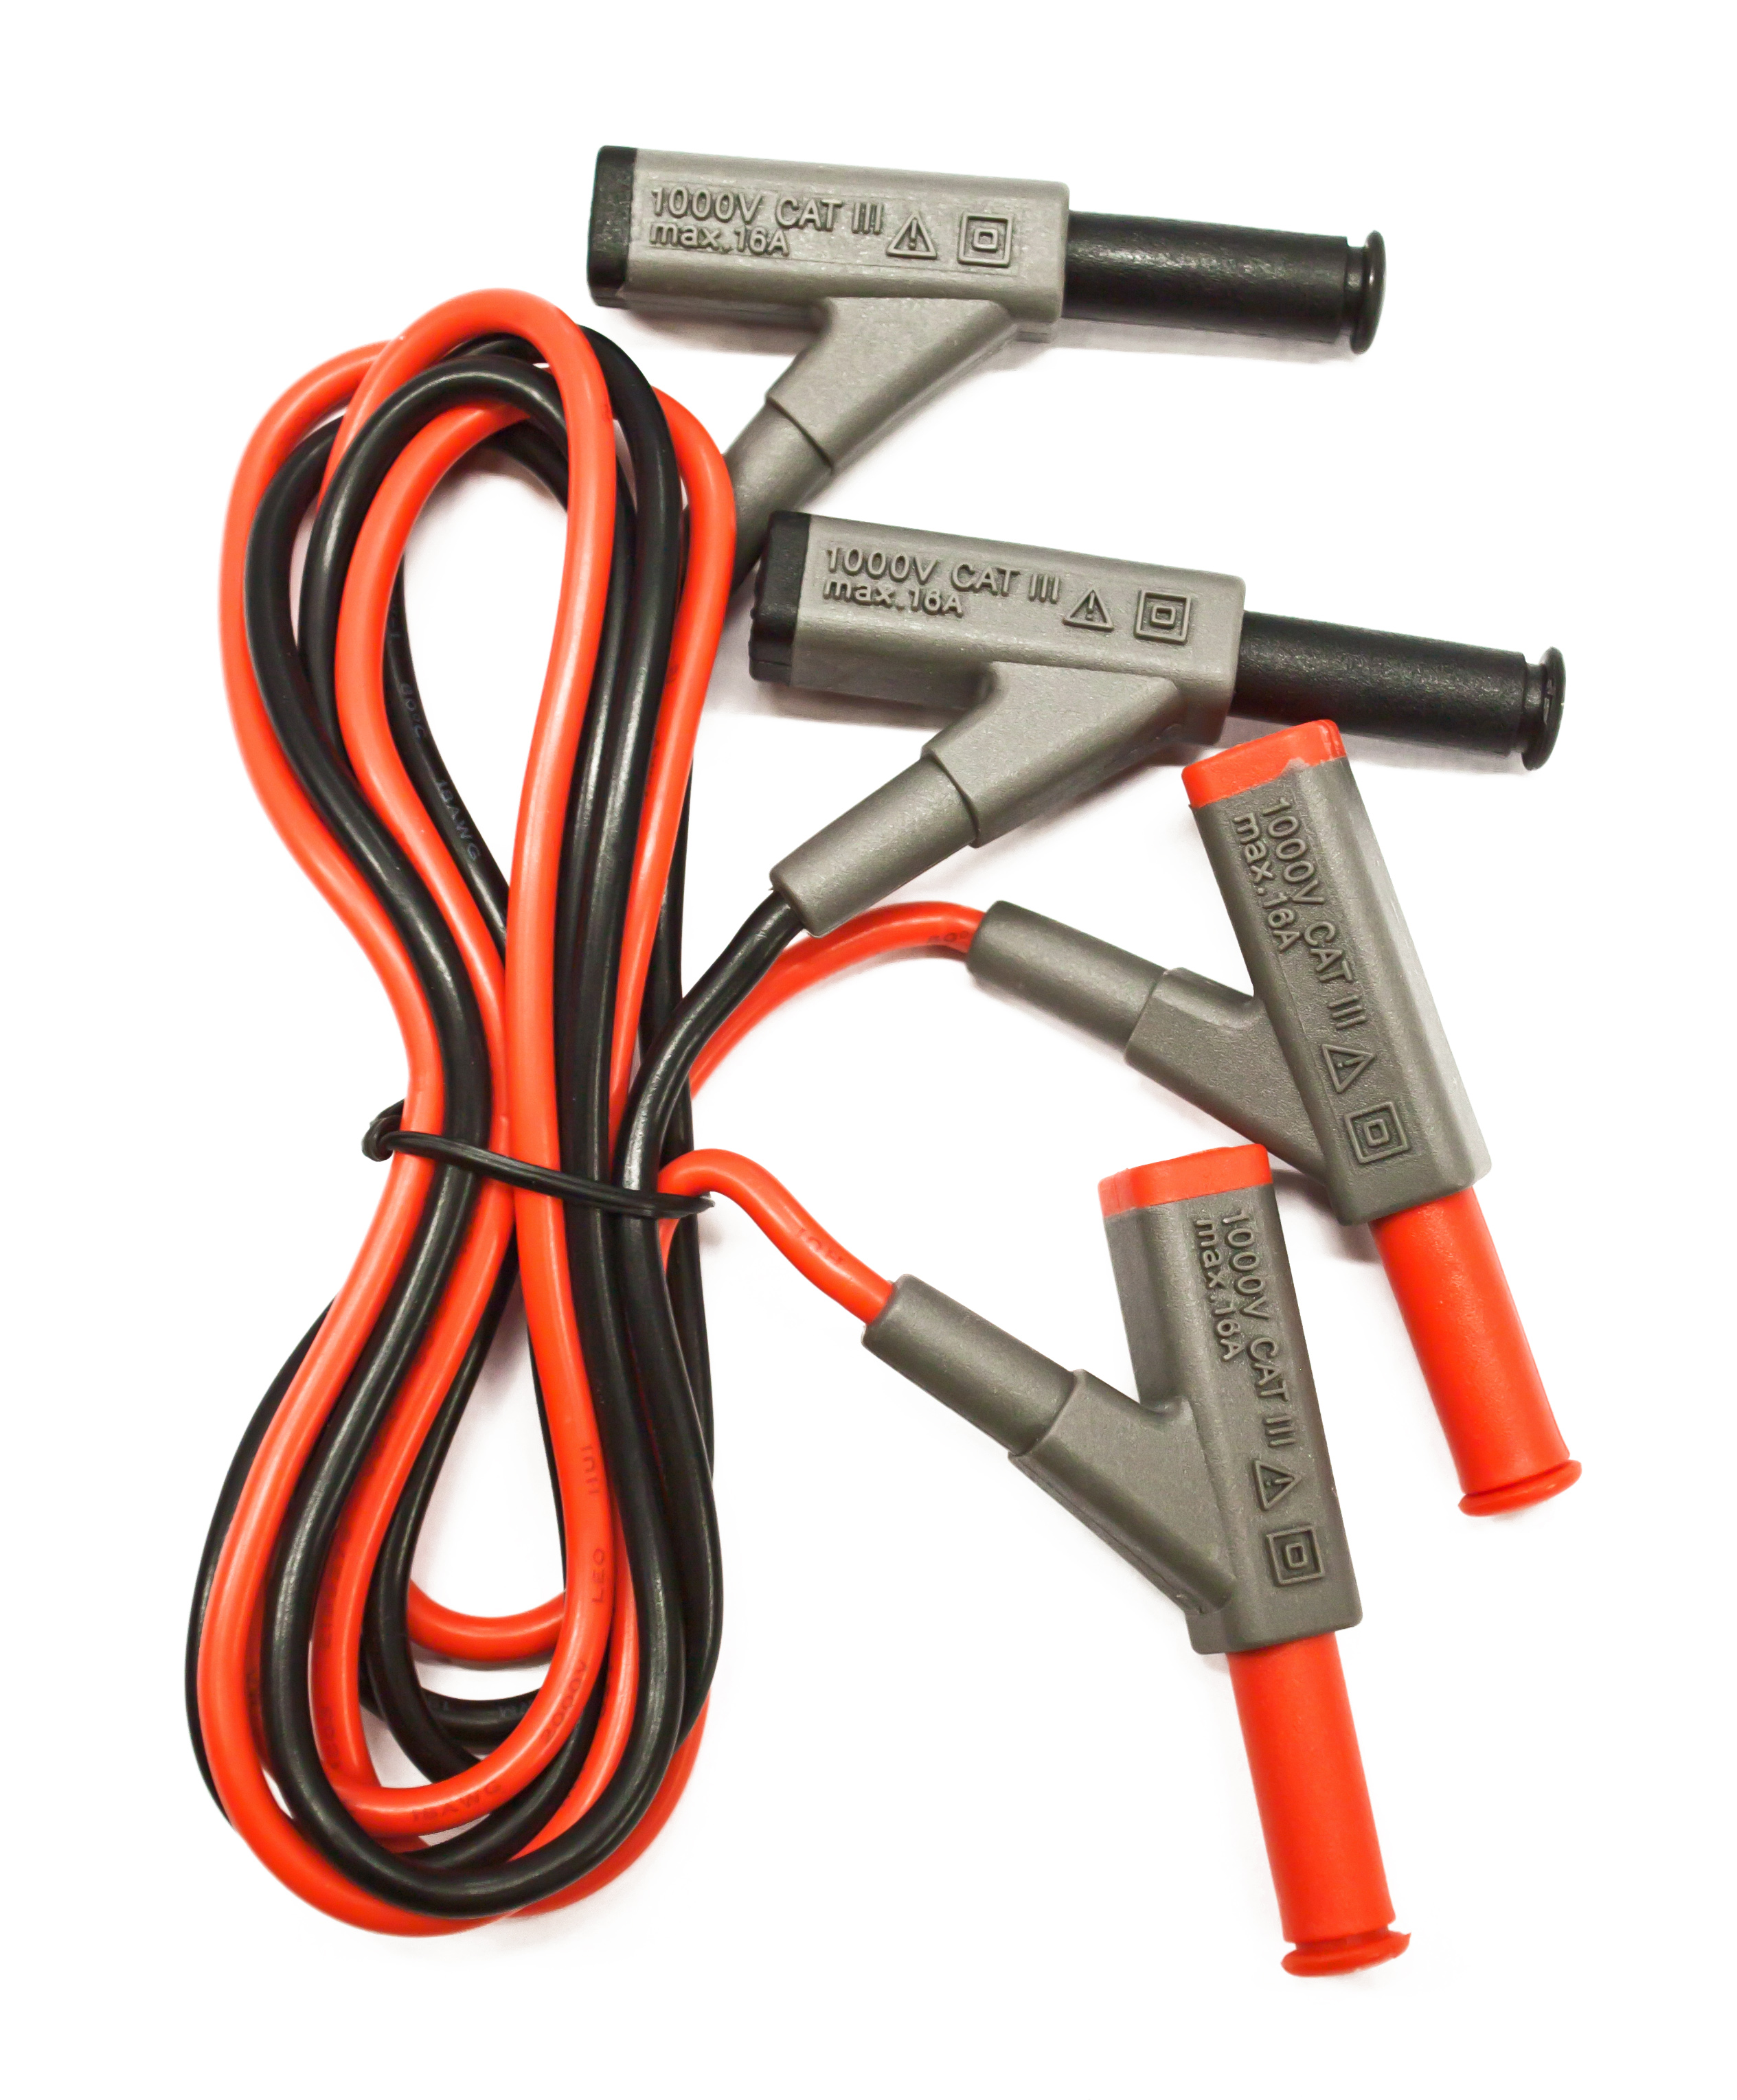 «PeakTech® P 7025» Test Leads for Digital Multimeter with coupling